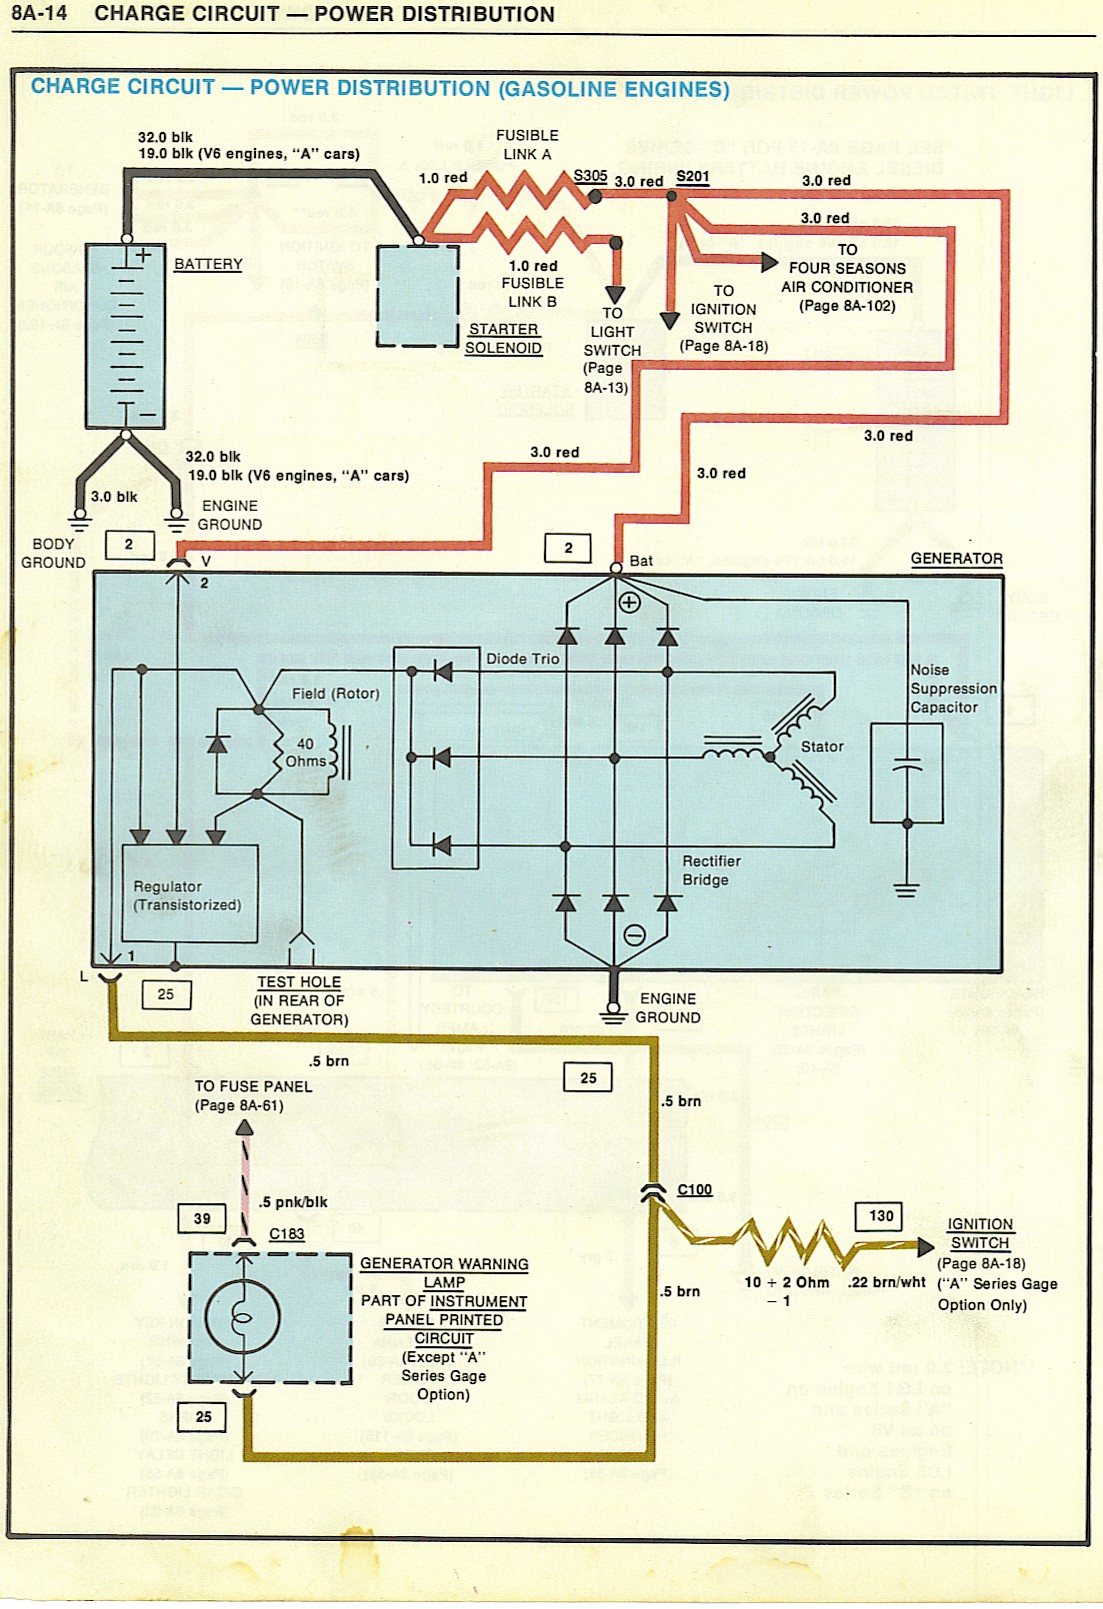 Gm Cruise Control Wiring Diagram Chevrolet